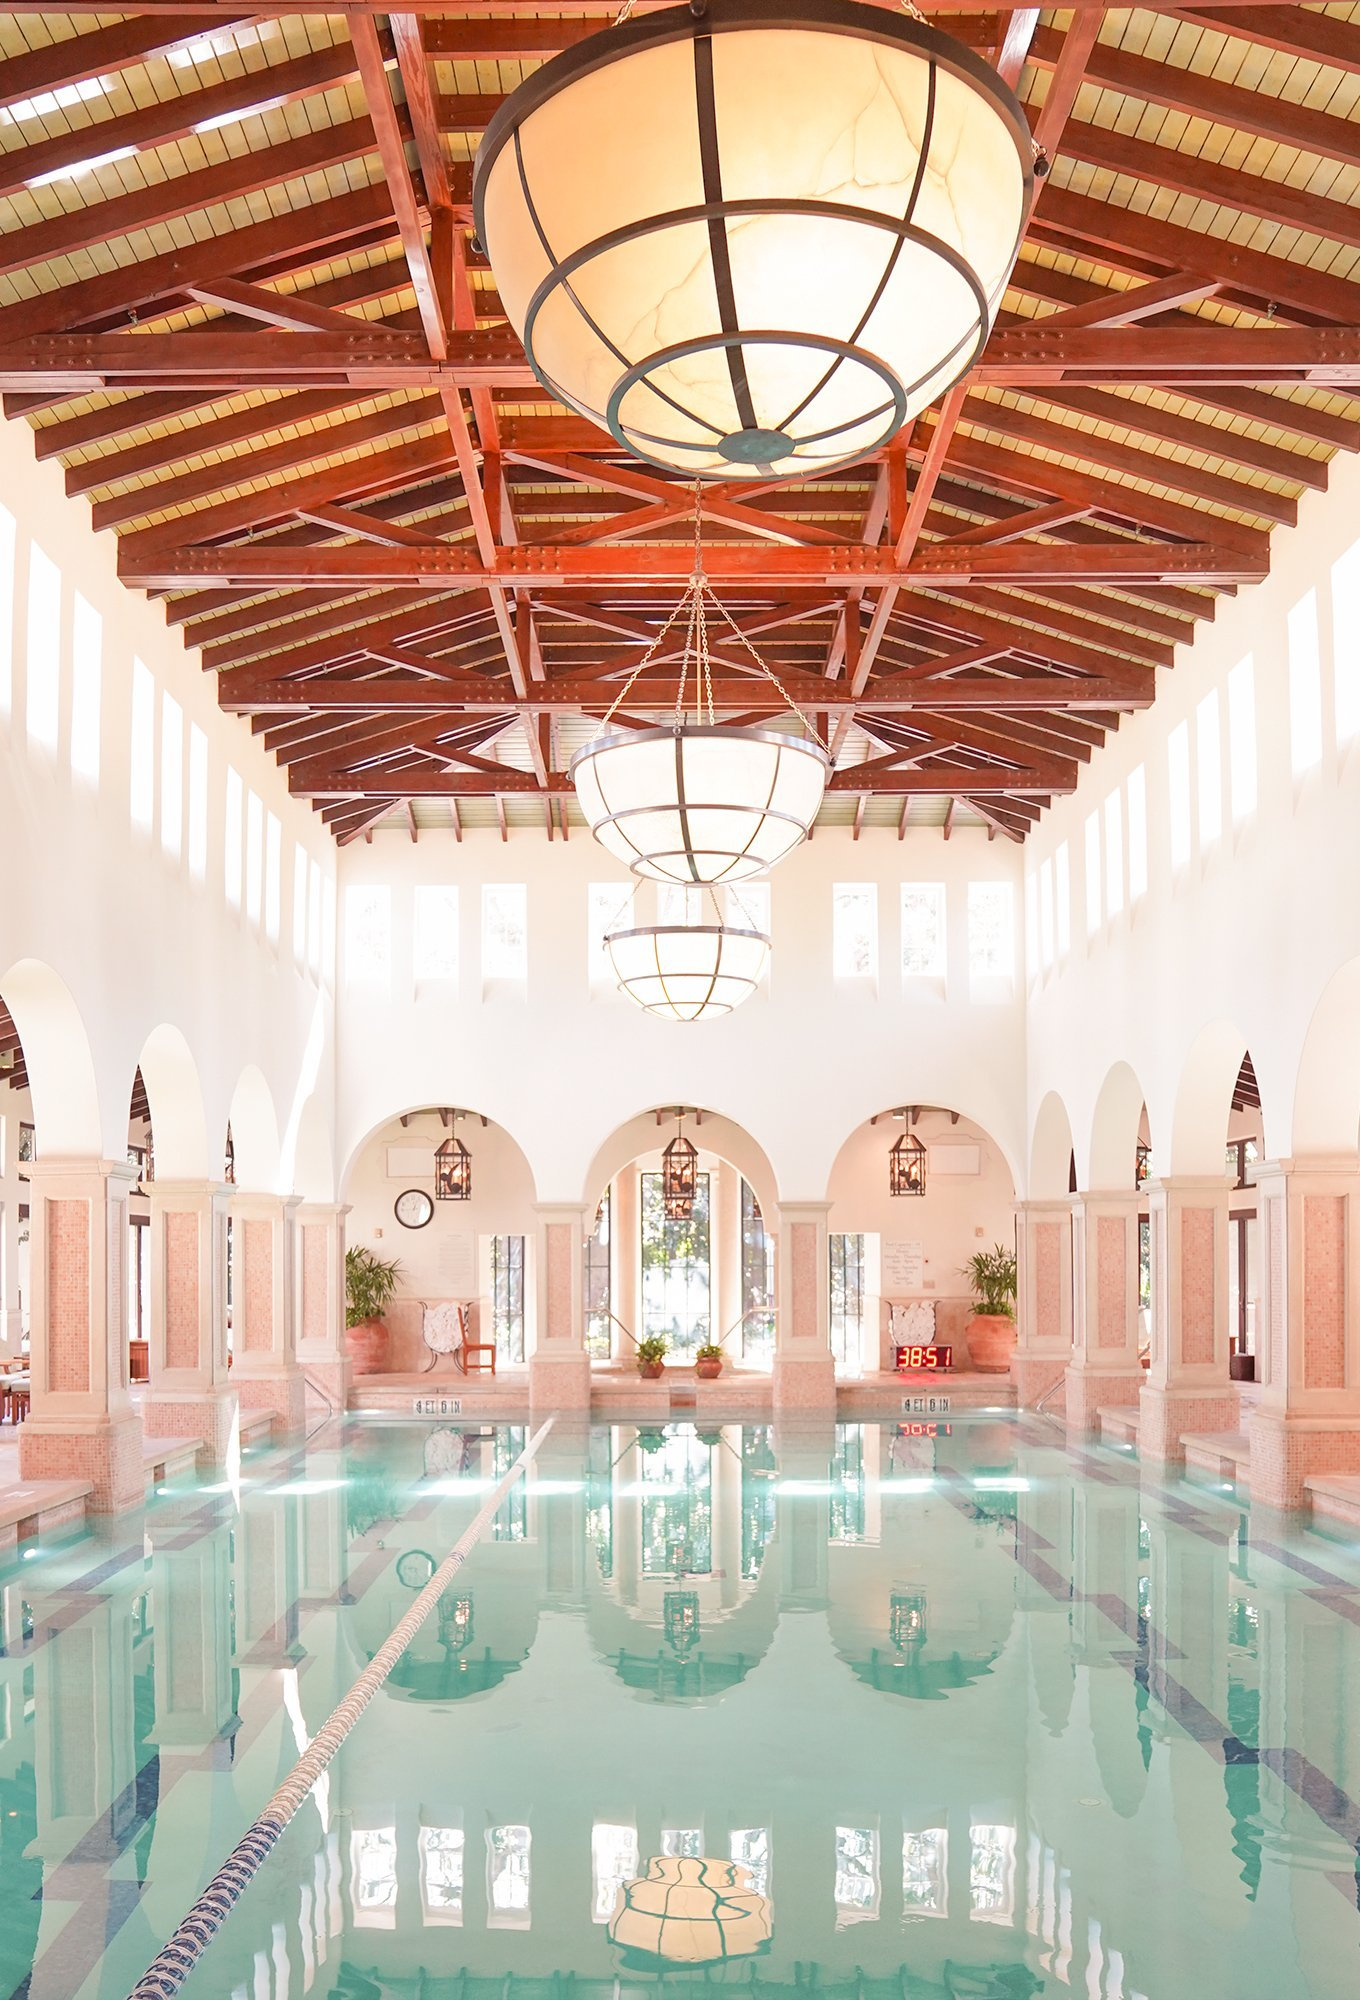 The indoor swimming pool at The Cloister